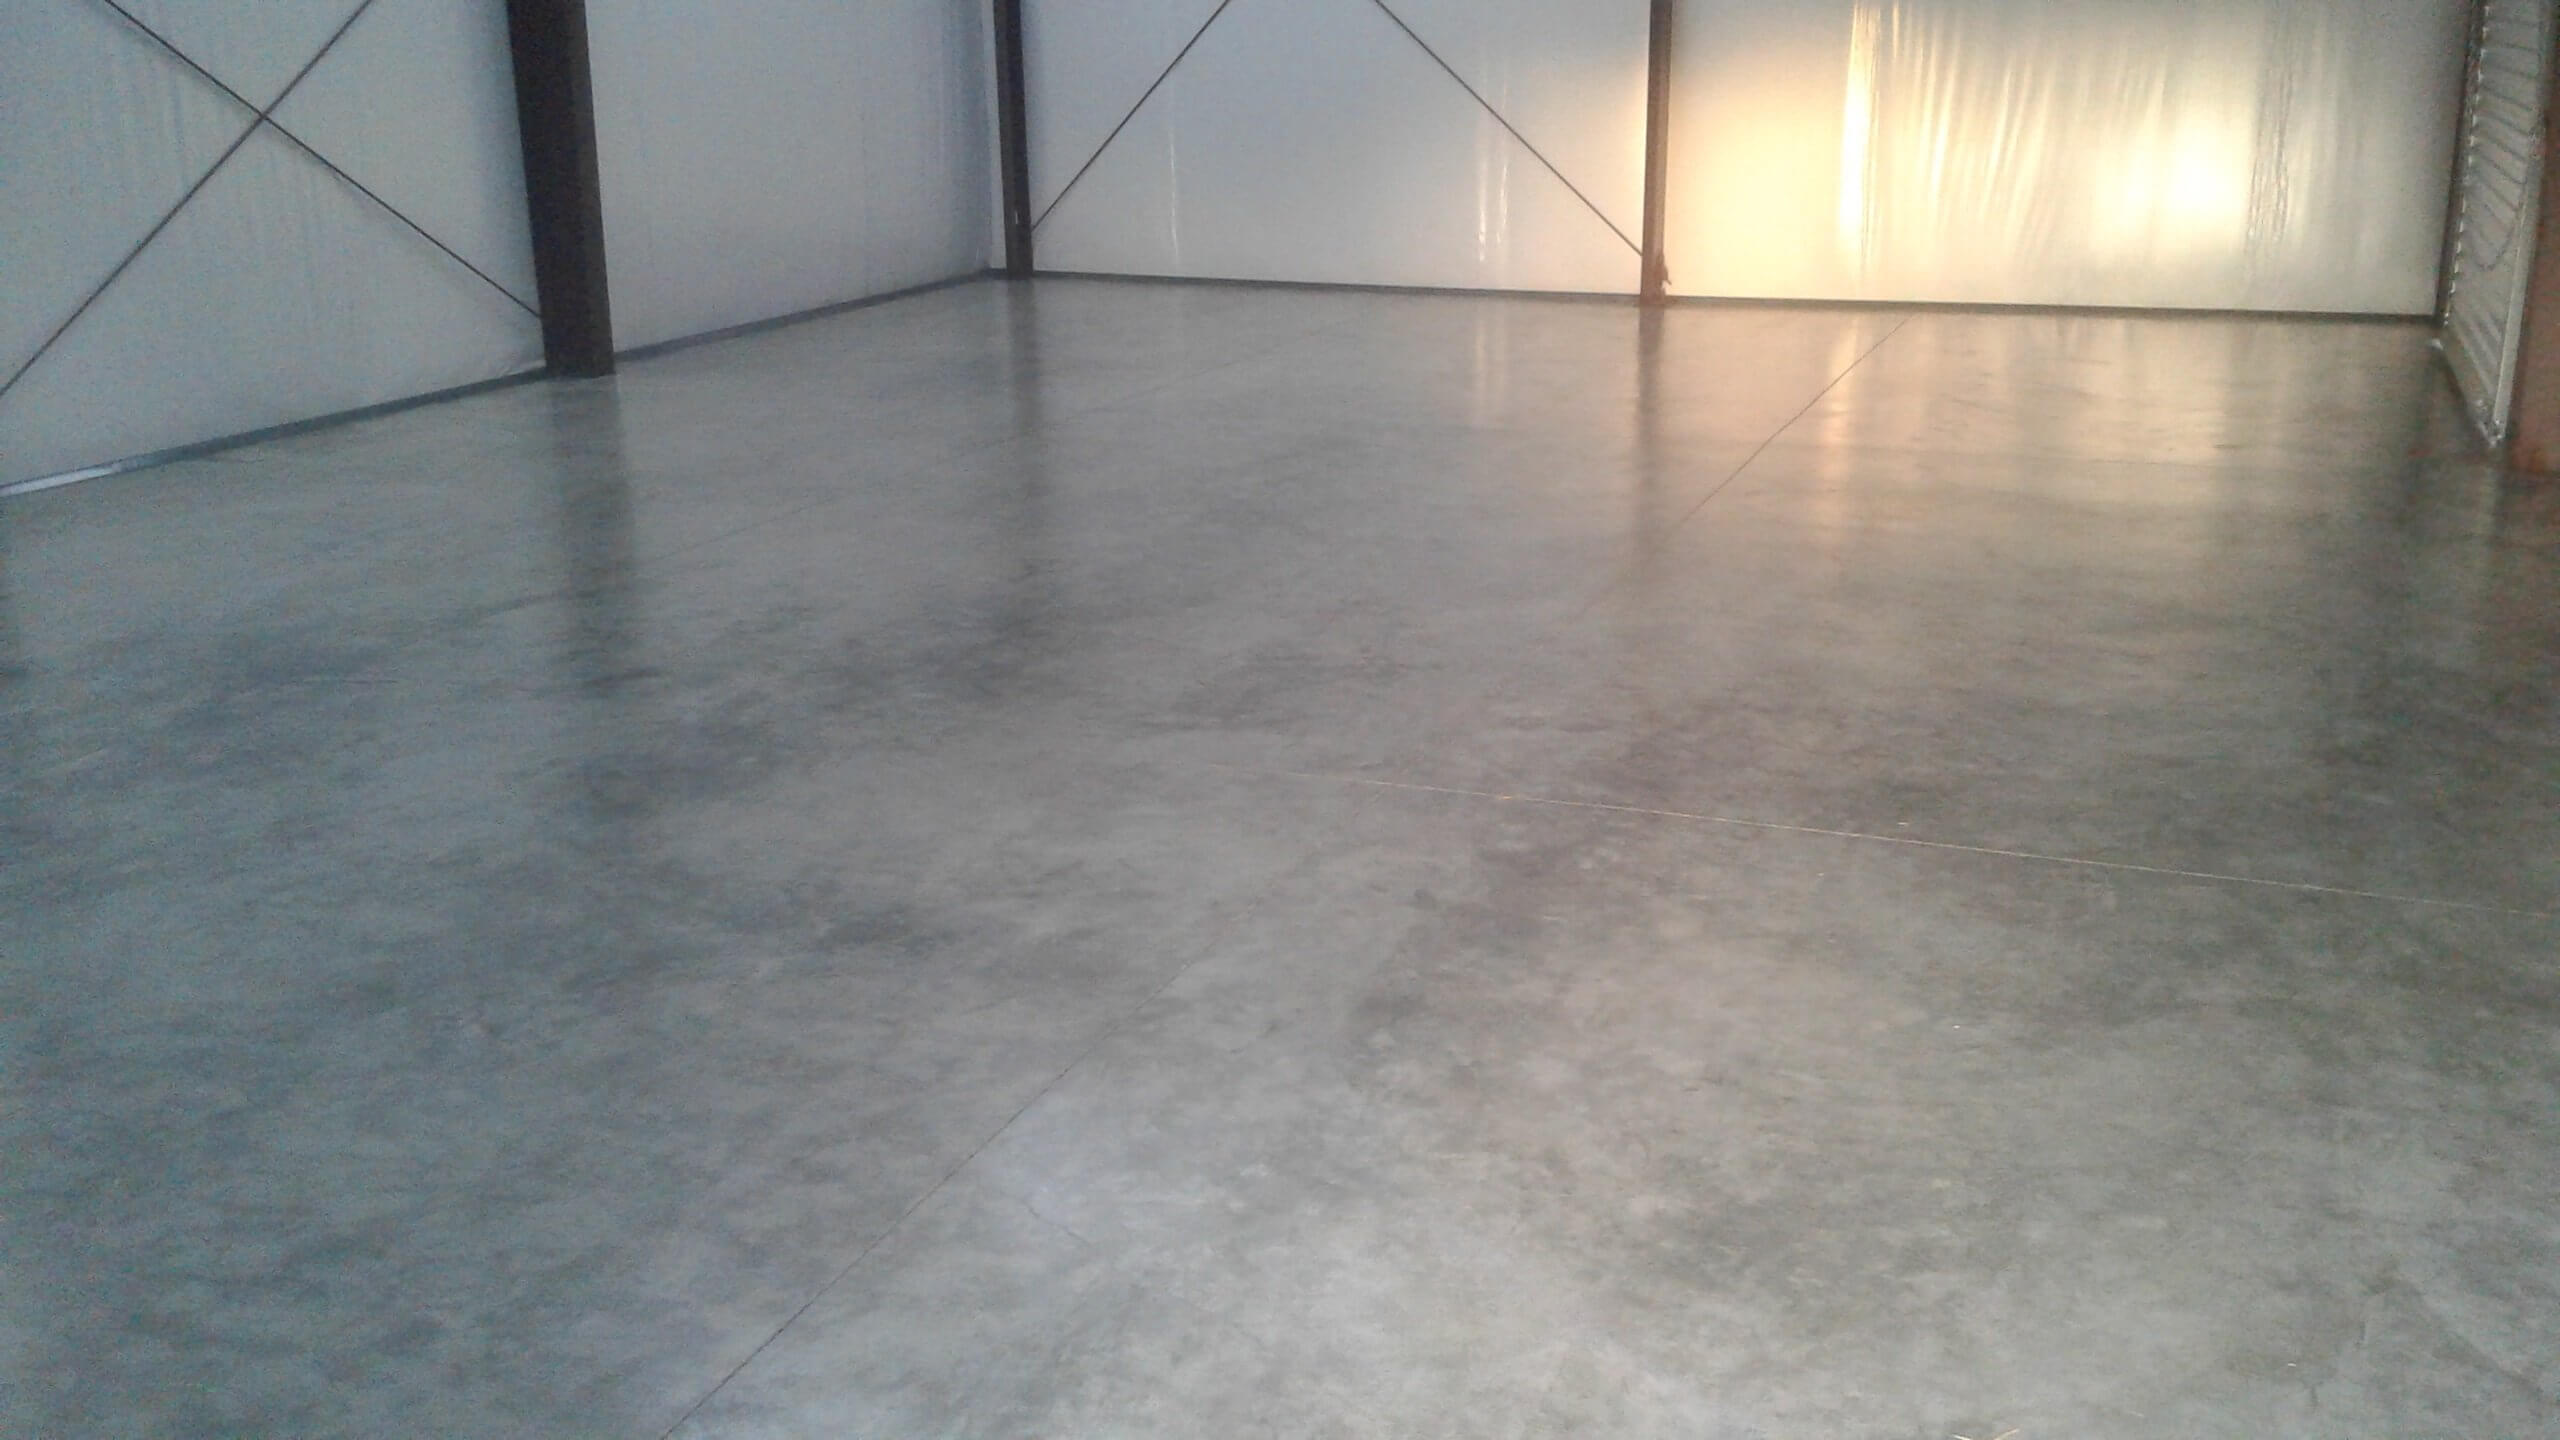 polished concrete coating customers shop floor sealed with armor nano guard